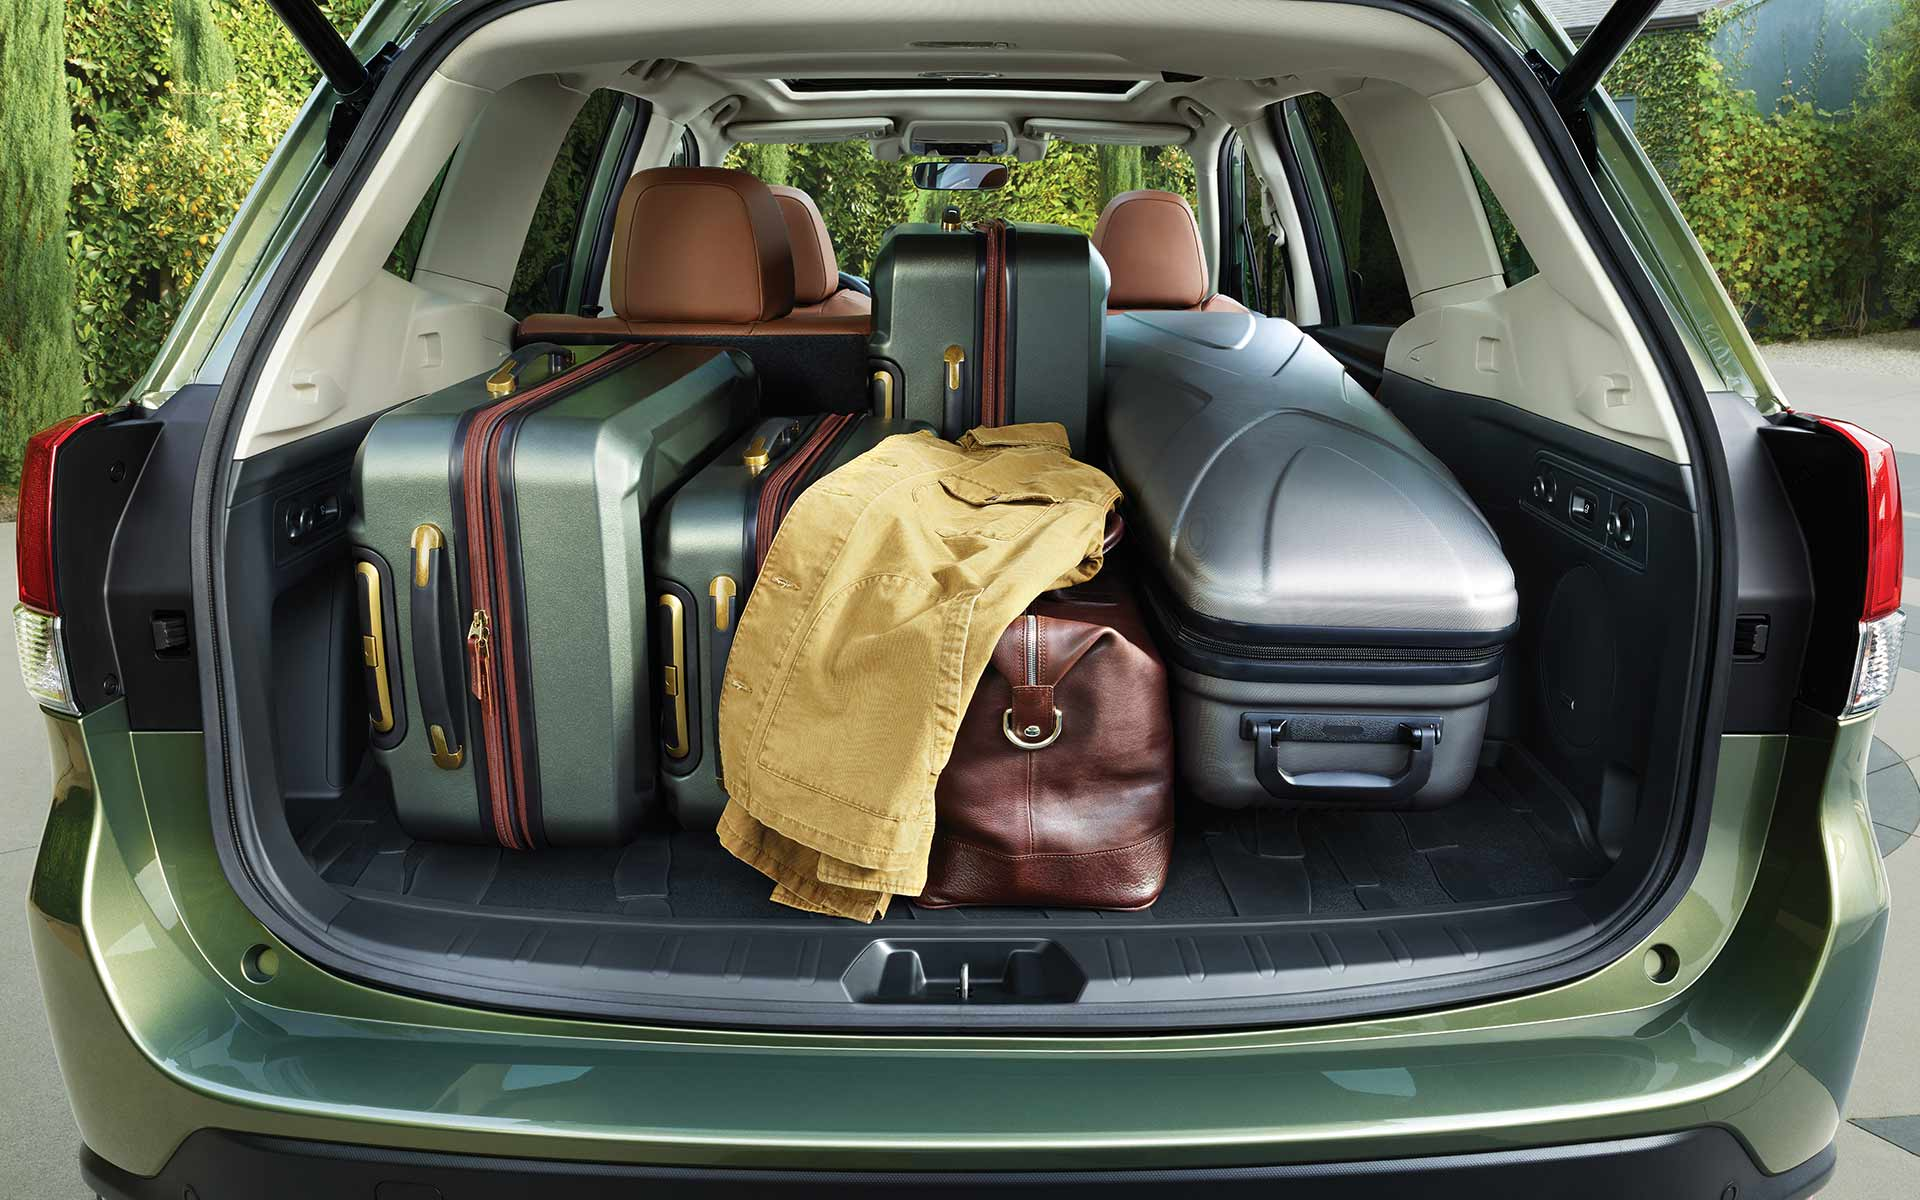 45 All New Dimensions Of 2019 Subaru Forester Reviews